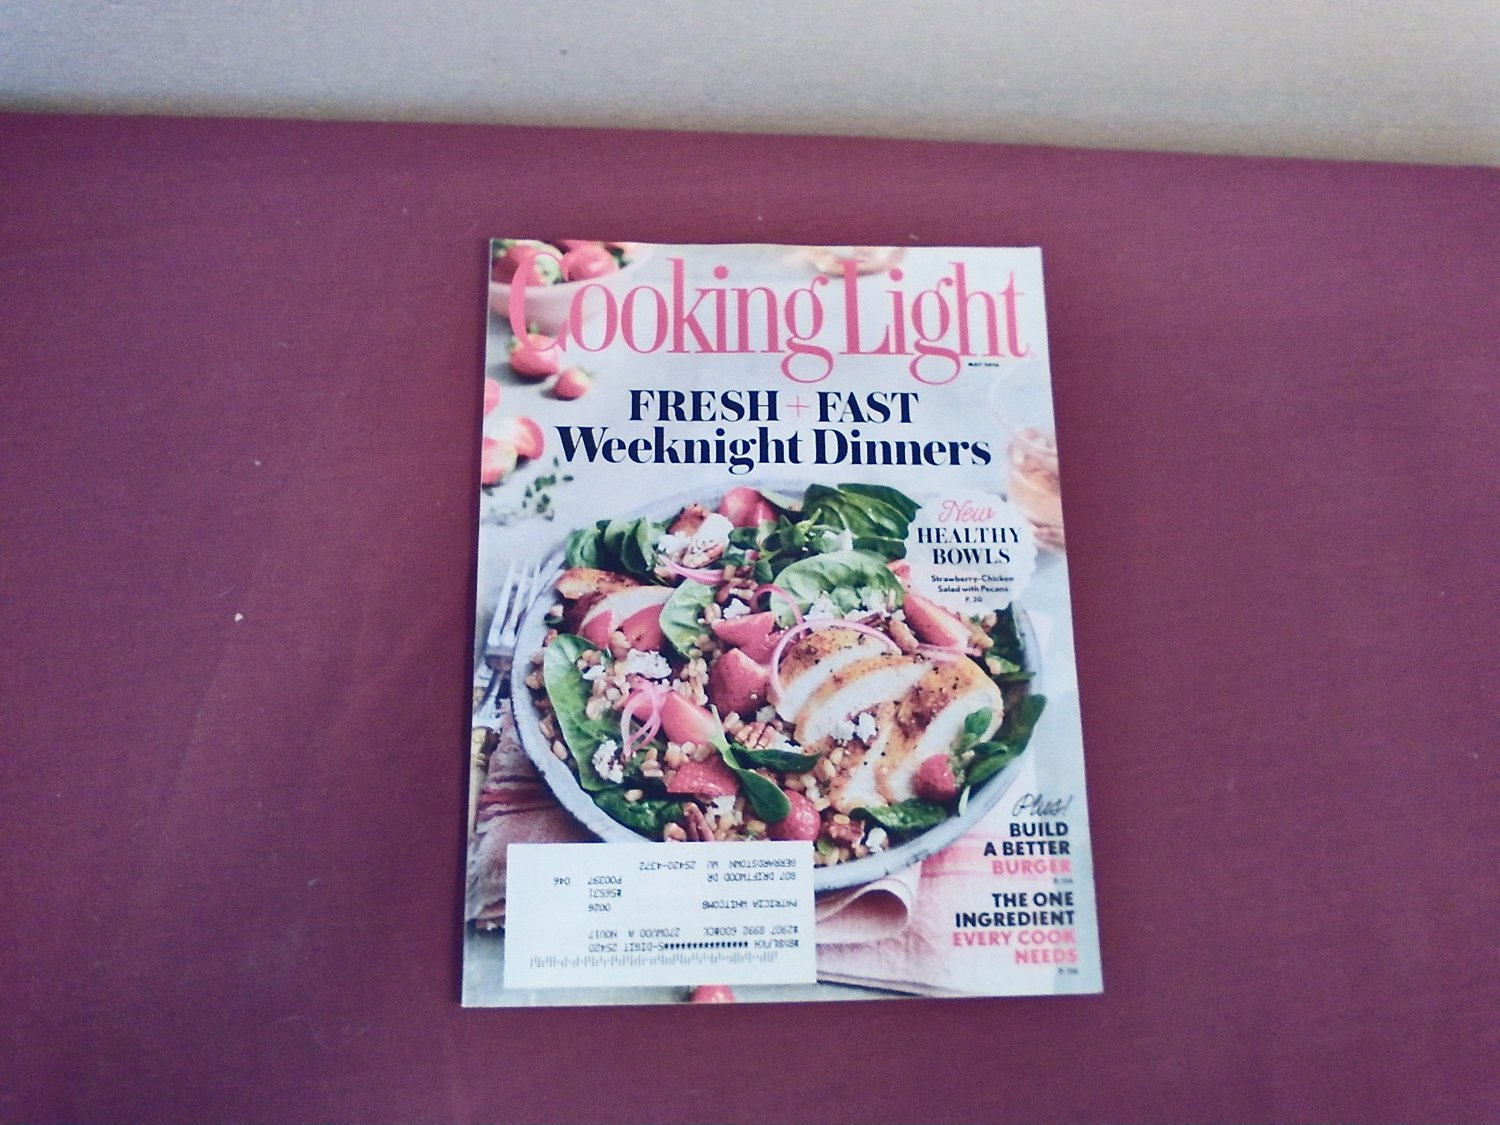 Cooking Light May 2016 Vol. 30 No. 4 - Fresh and Fast Weeknight Dinners - Ramp Recipes (G1)